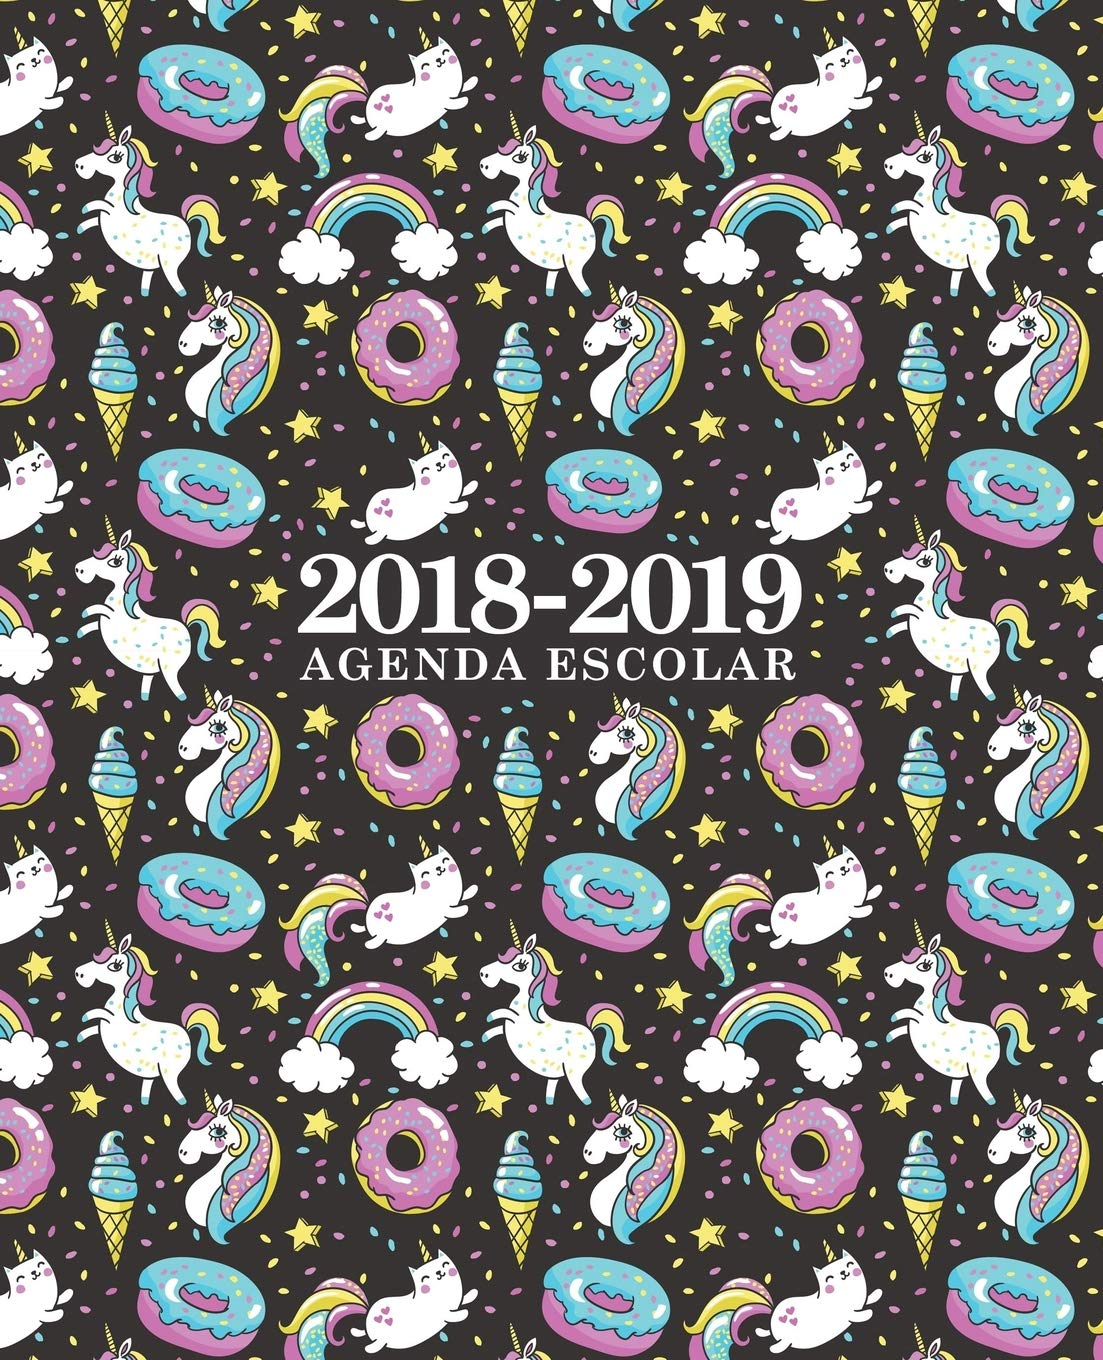 Amazon.com: Agenda escolar 2018-2019: 190 x 235 mm: Agenda ...